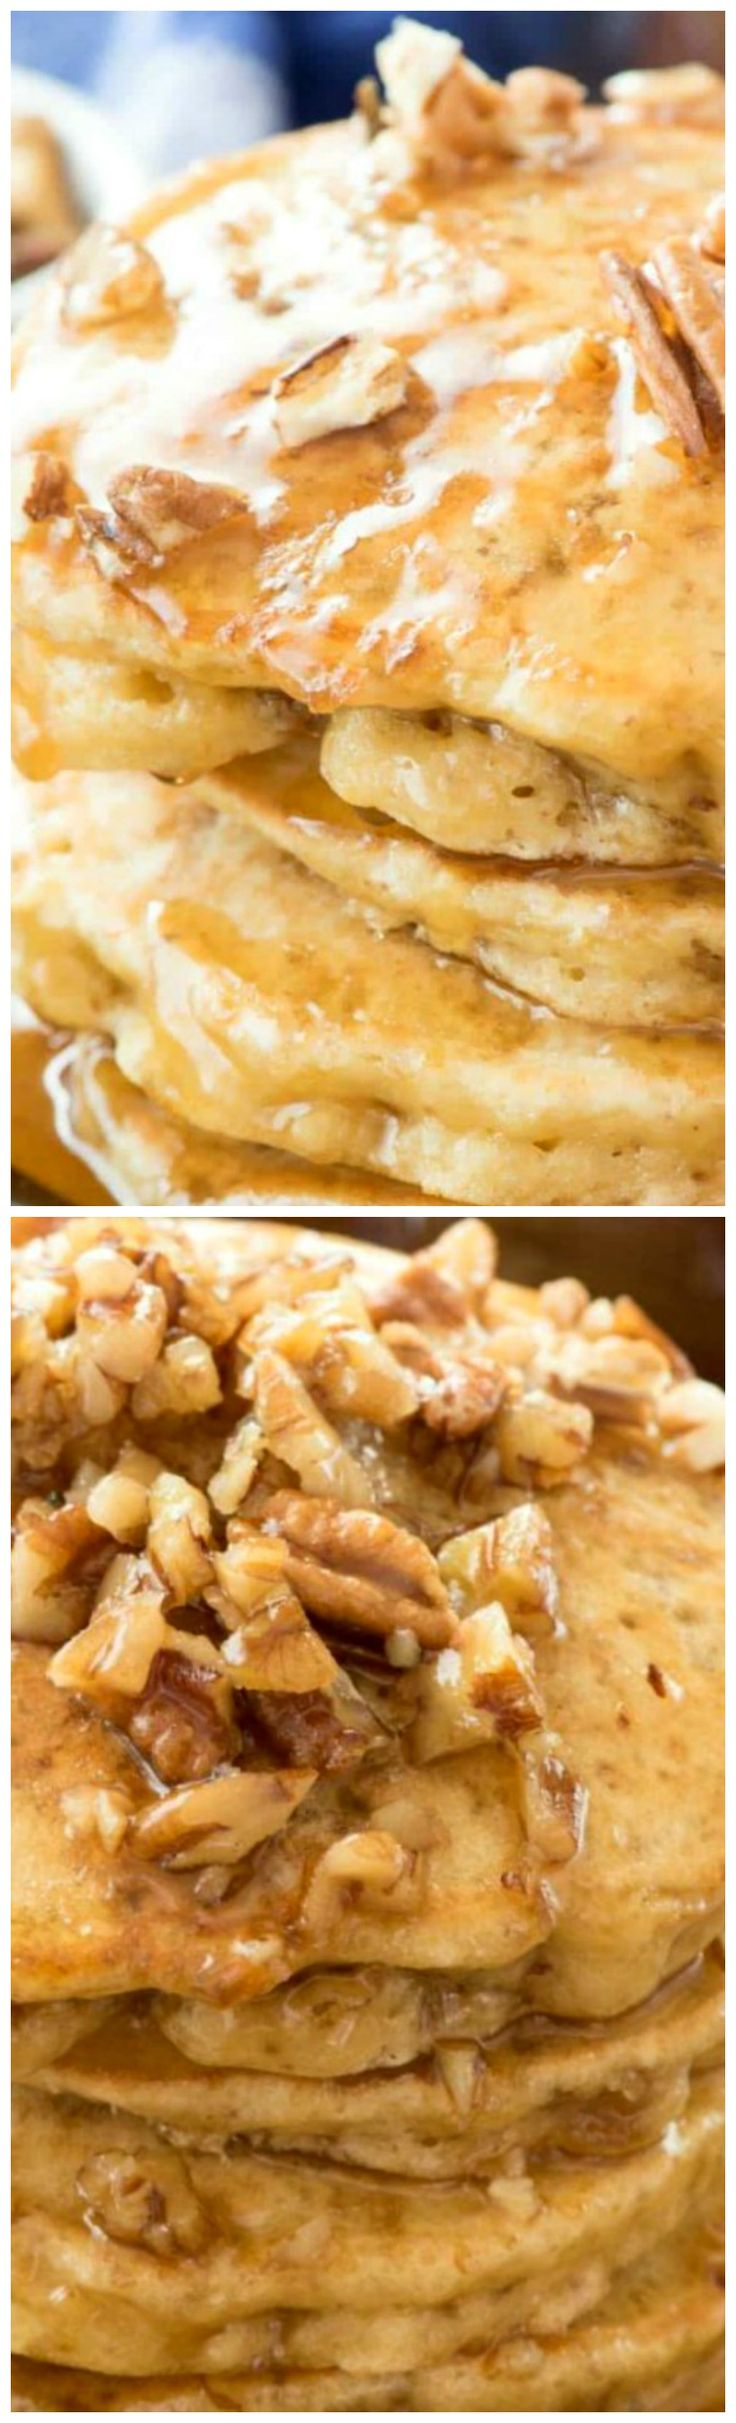 Butter Pecan Pancakes ~ This easy recipe is the BEST PANCAKE RECIPE EVER... The flavor tastes just like butter pecan ice cream, especially with the butter pecan syrup!